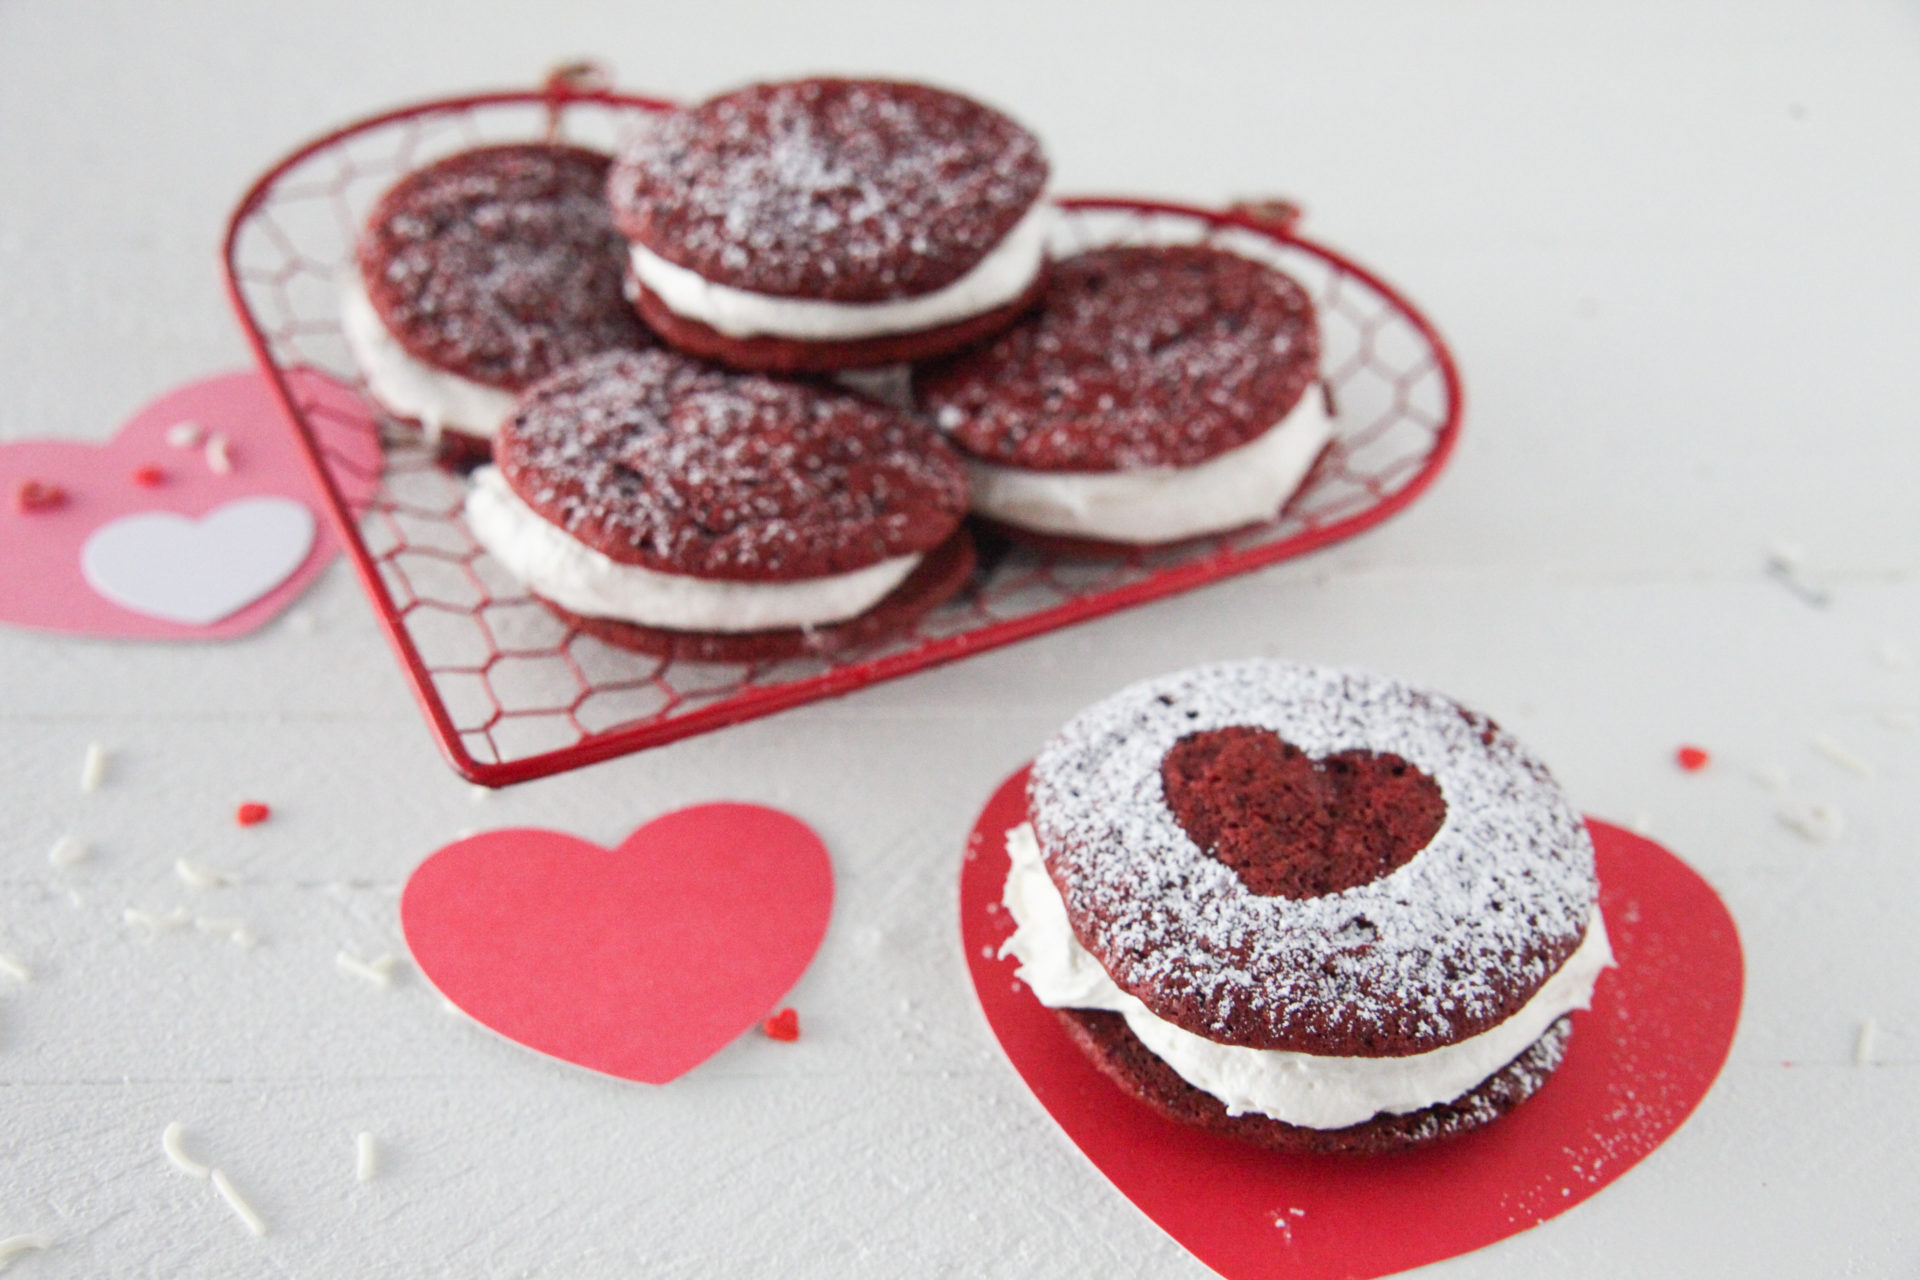 Red Velvet Whoopie Pies Made With Cake Flour